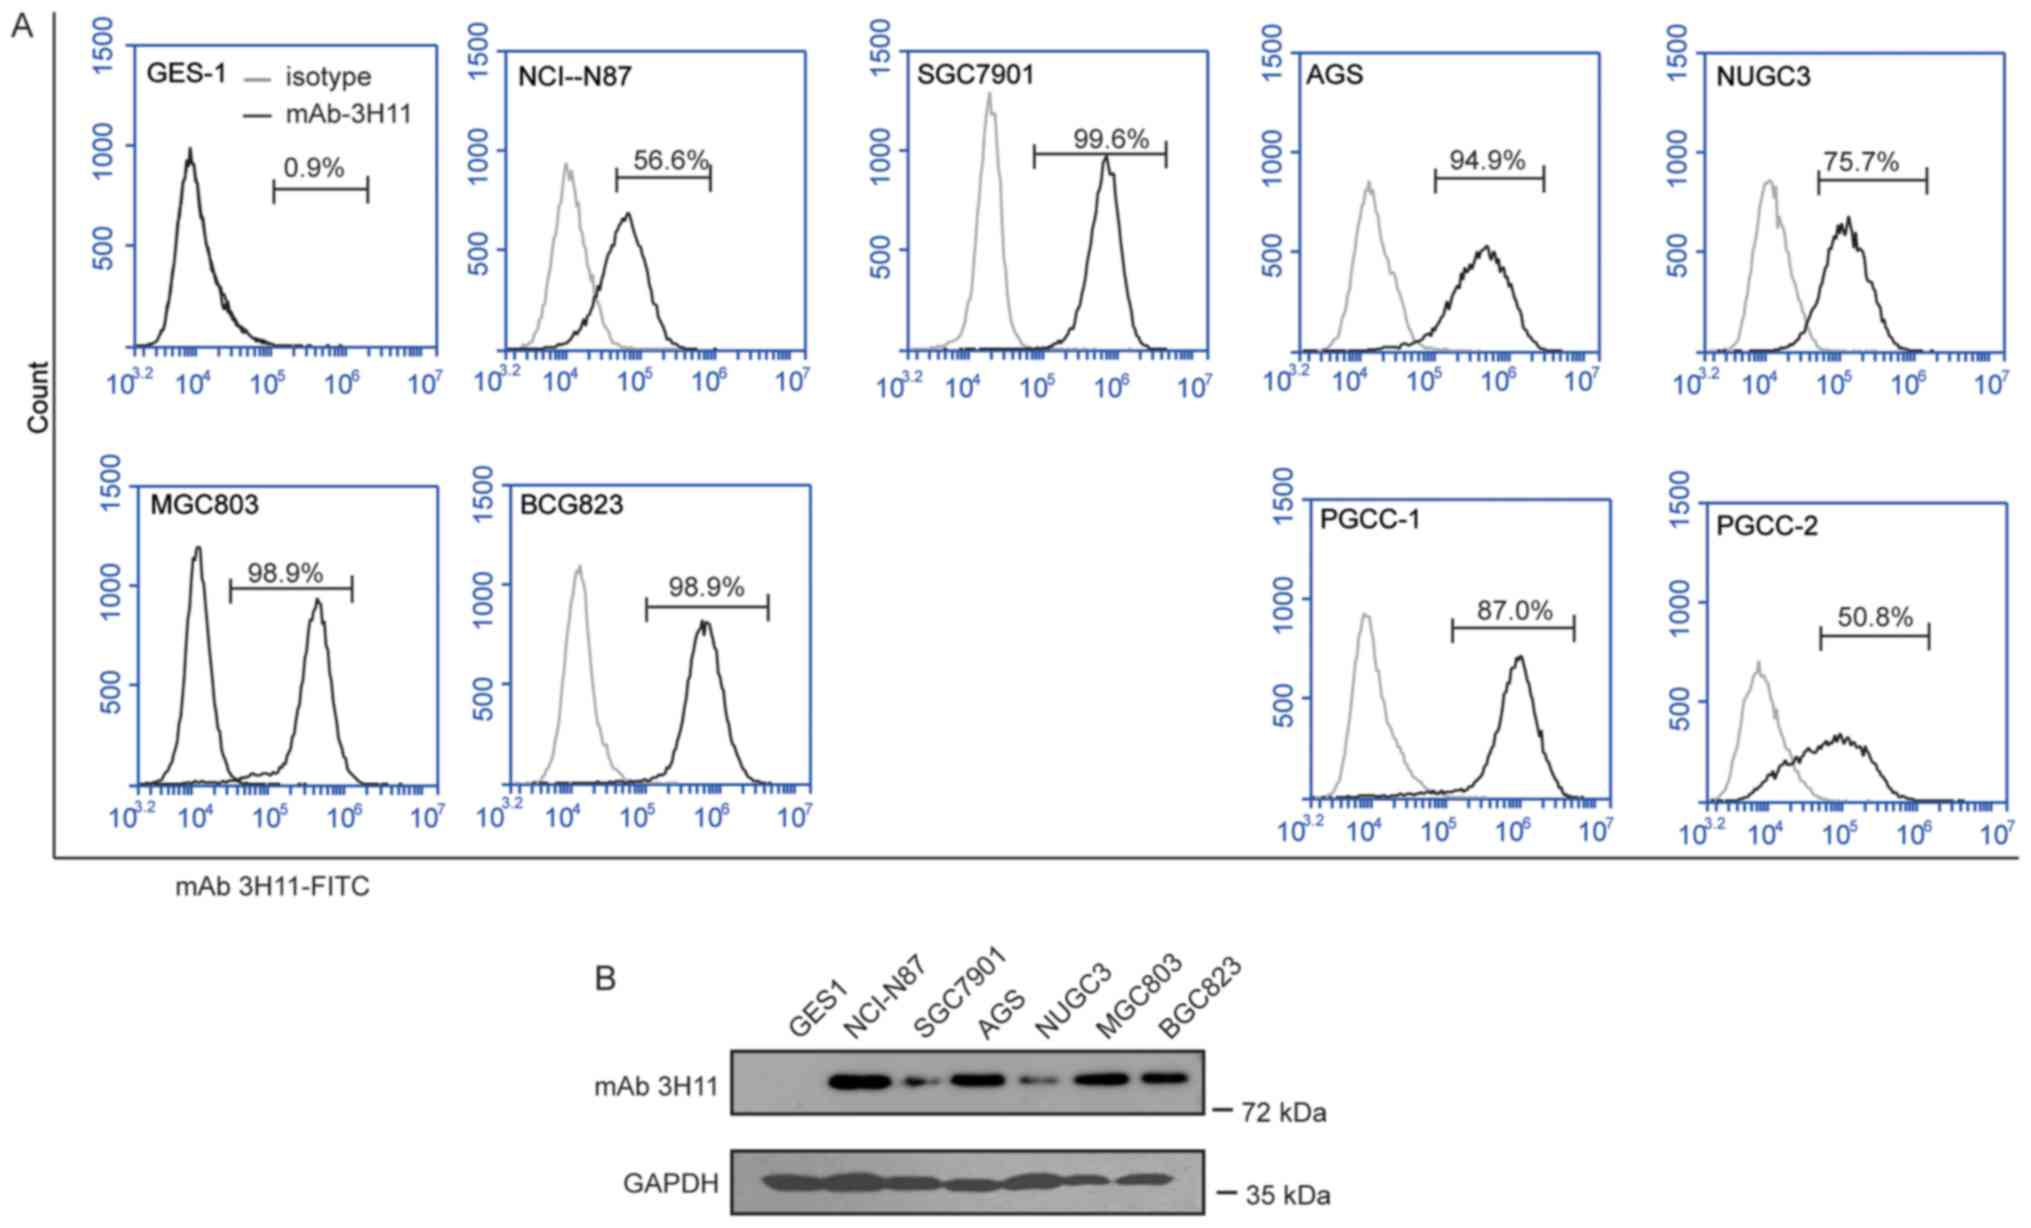 Monoclonal Antibody 3h11 Chimeric Antigen Receptors Enhance T Cell Ory Circuit Diagram Continued Figure 2 Analysis Of The Expression Mab In Gc Lines A Flow Cytometry Histogram Plots Surface